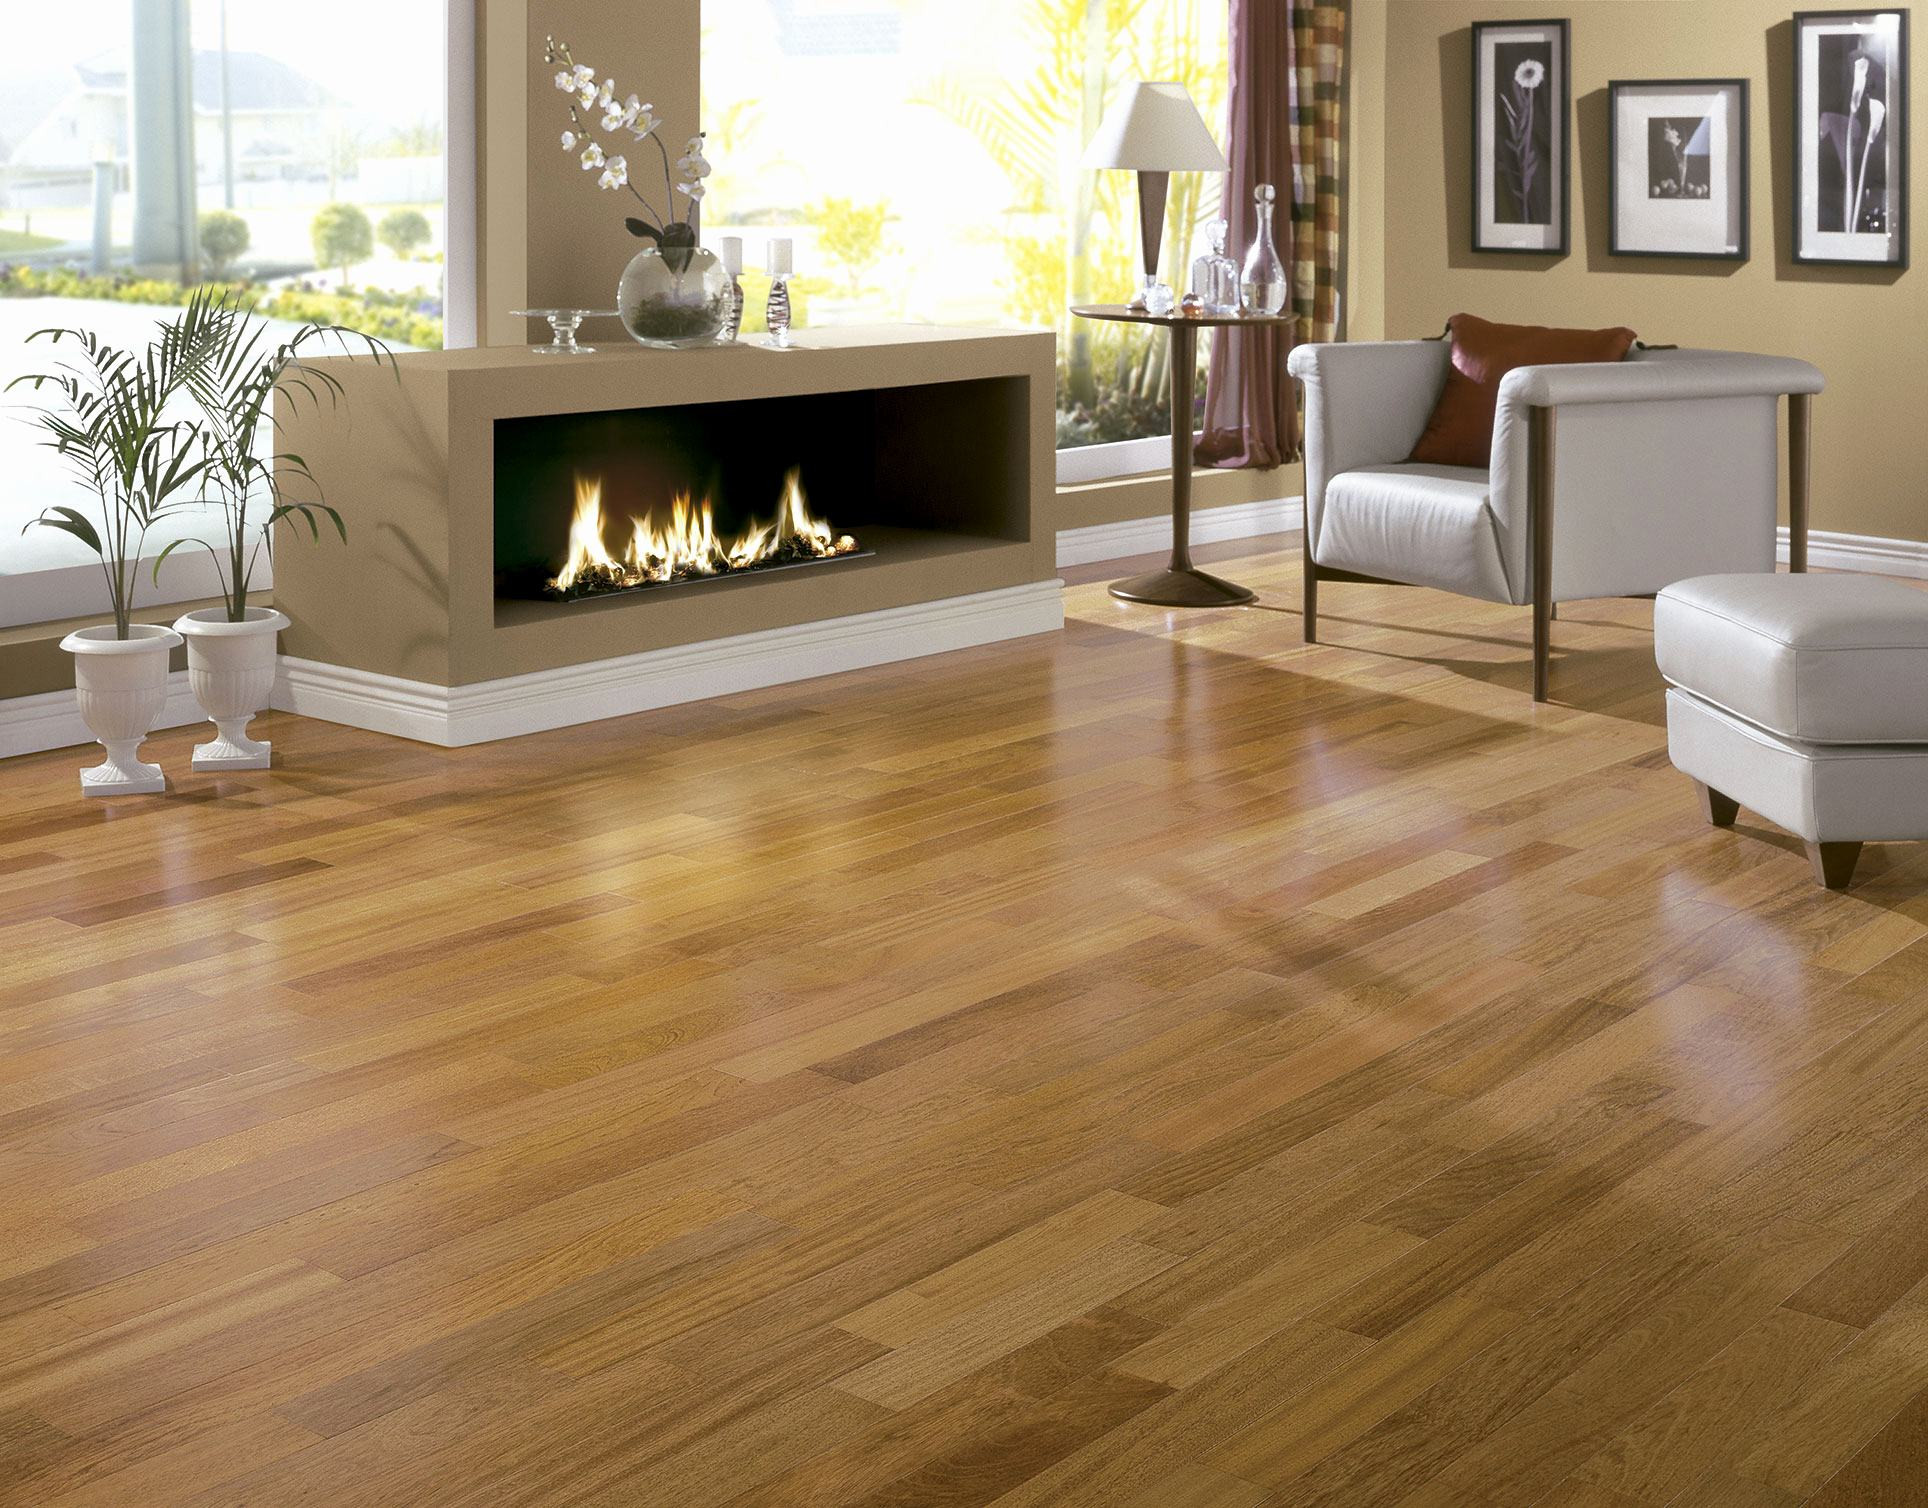 clearance hardwood flooring sale of white kitchen cabinets with cherry wood floors unique engaging regarding white kitchen cabinets with cherry wood floors unique engaging discount hardwood flooring 5 where to buy